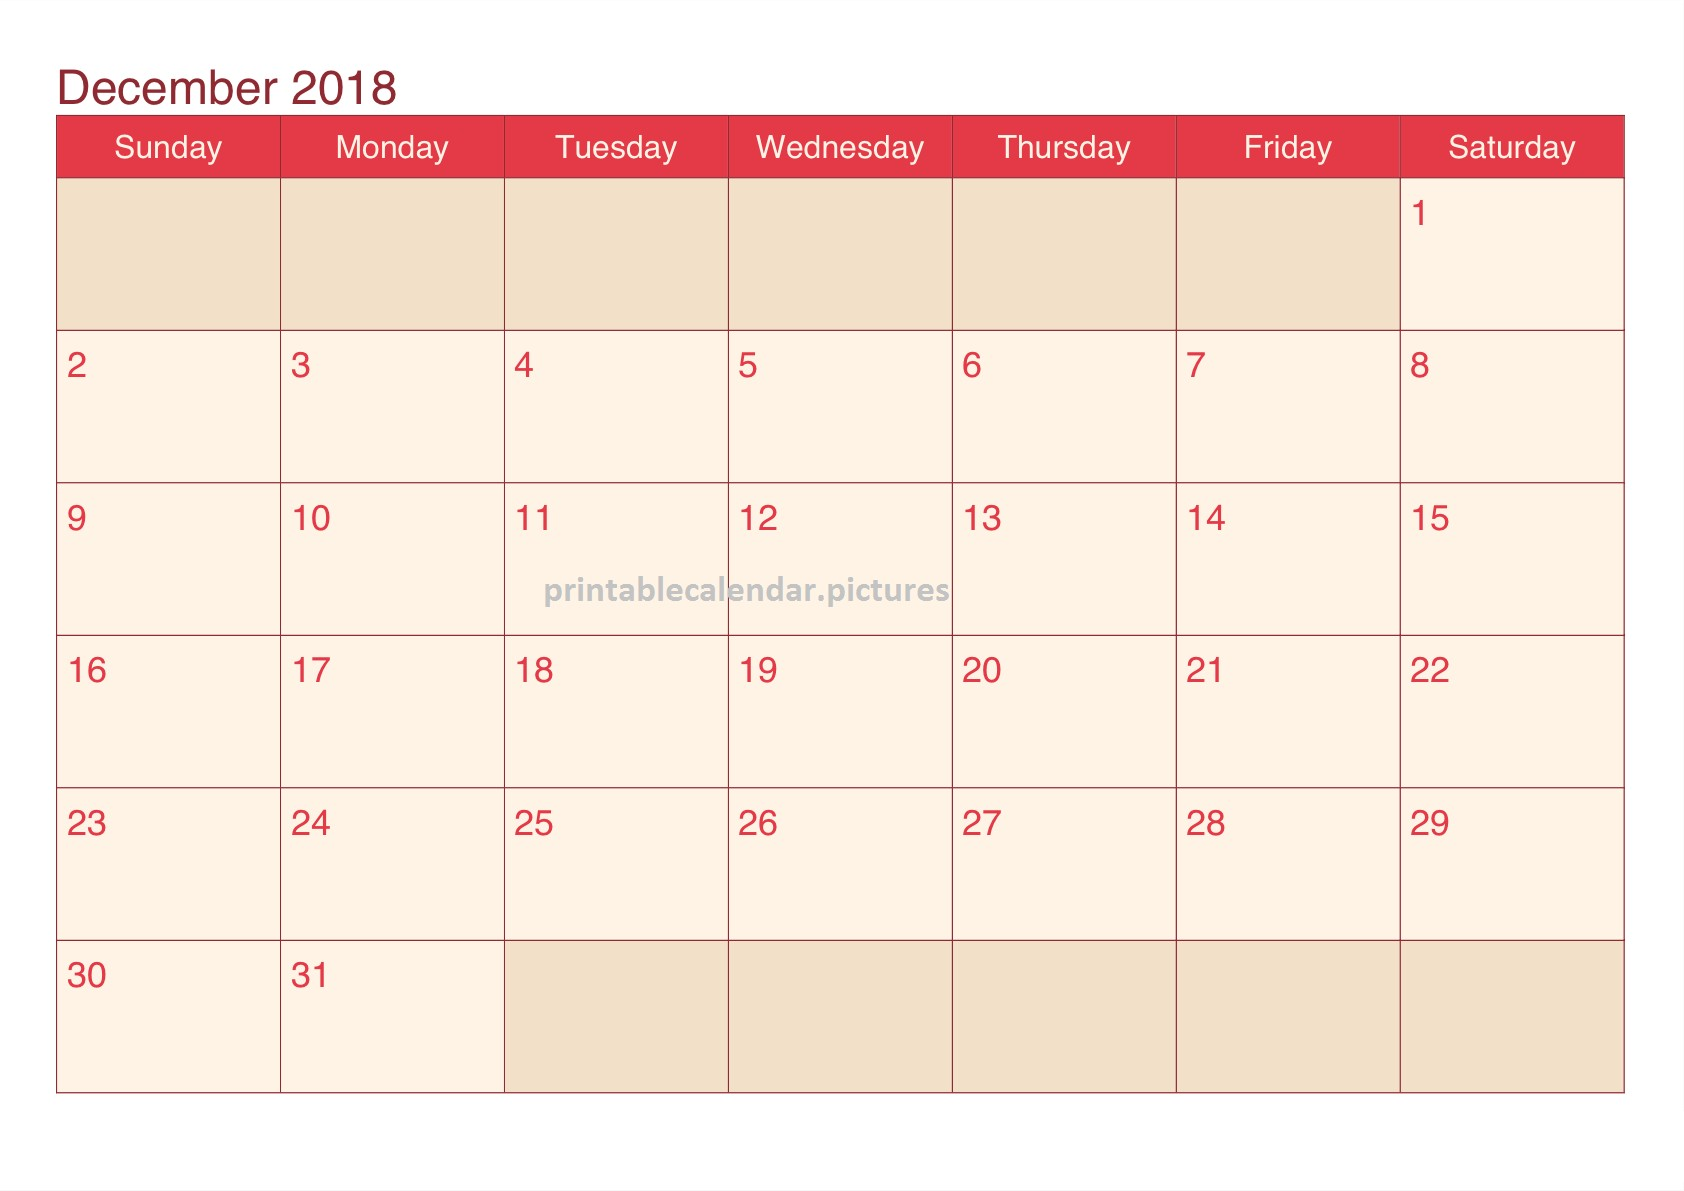 Calendario 2019 Chile Imprimir Más Recientes Printable December 2018 Calendar Colorful Of Calendario 2019 Chile Imprimir Más Recientemente Liberado Observar Calendario Para Imprimir 2019 Pdf